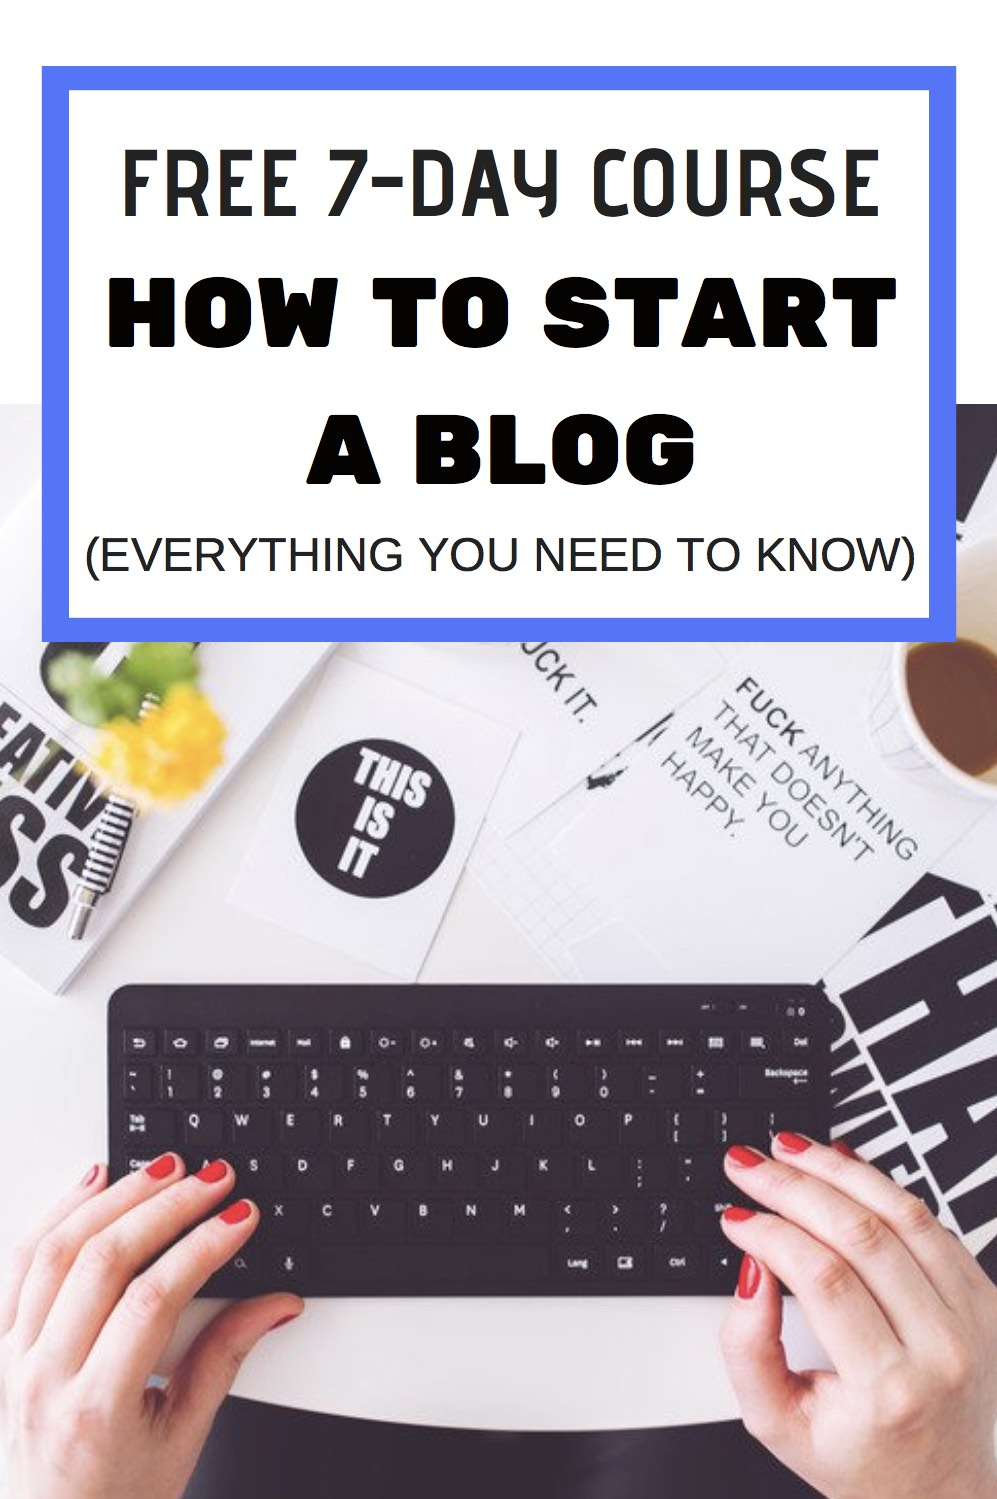 How to Start a Blog Free Course #blogging